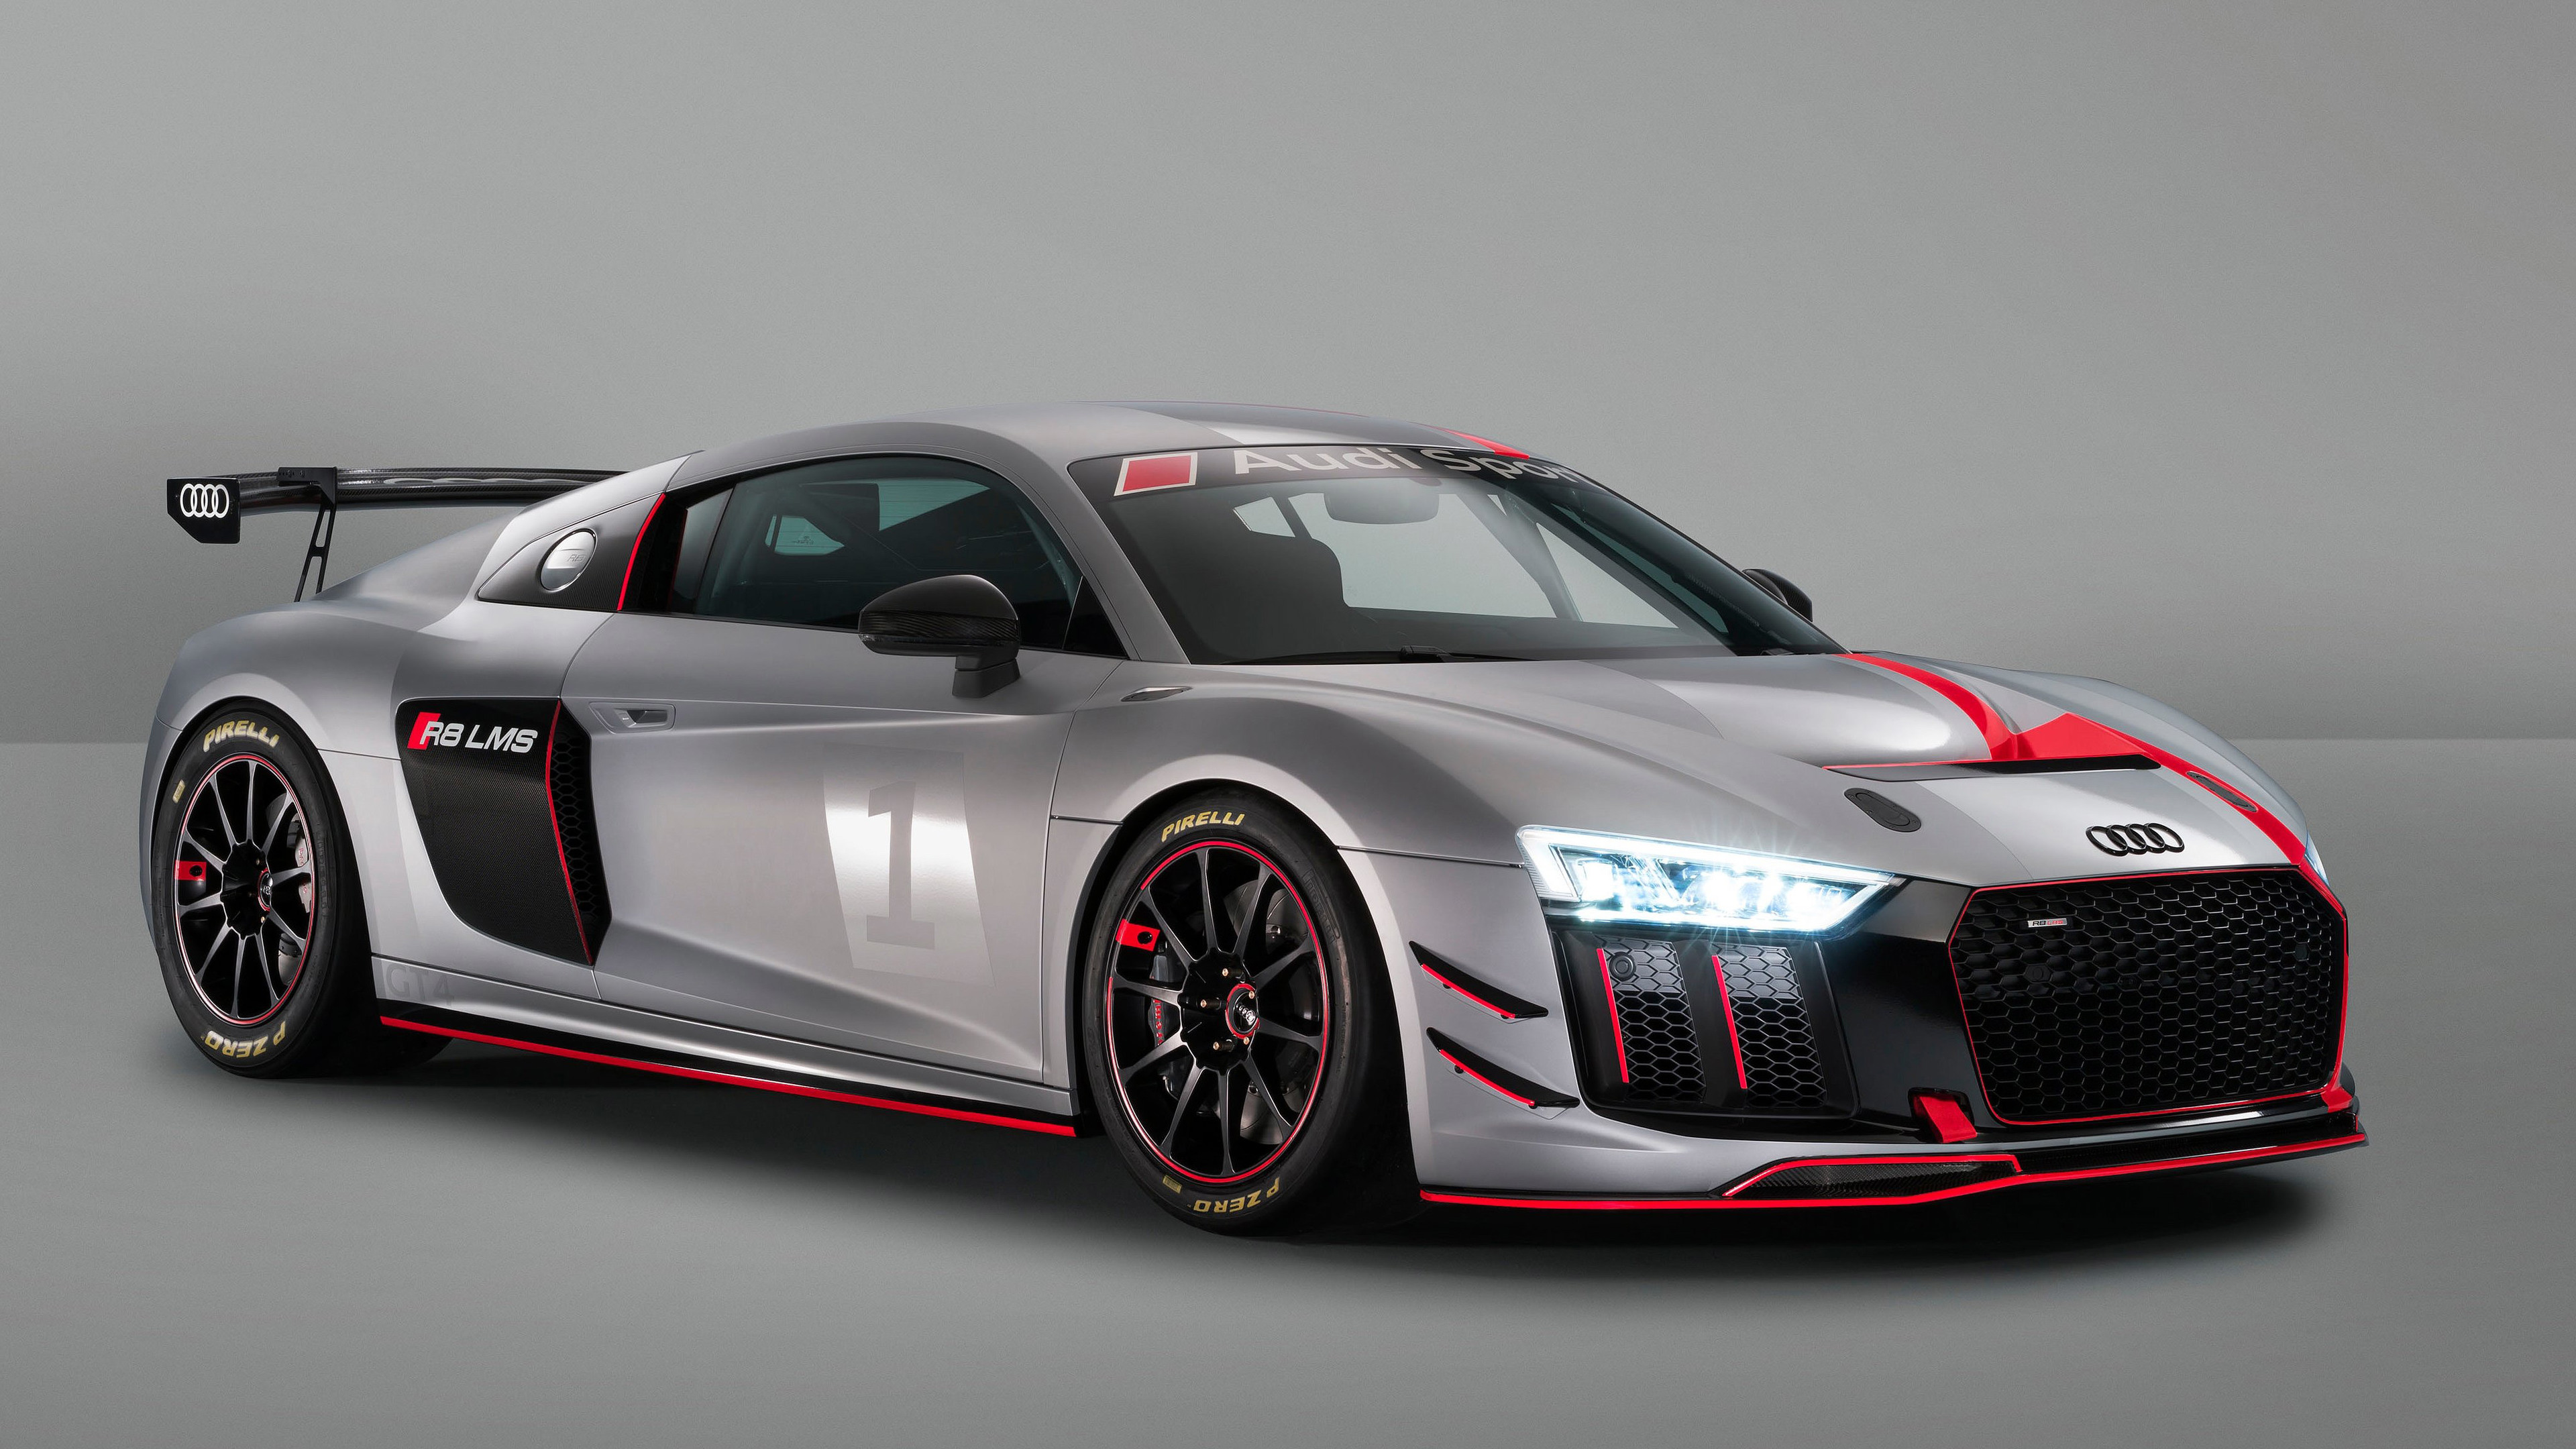 2017 audi r8 coupe audi sport edition 1539105158 - 2017 Audi R8 Coupe Audi Sport Edition - hd-wallpapers, cars wallpapers, audi wallpapers, audi r8 wallpapers, 4k-wallpapers, 2017 cars wallpapers